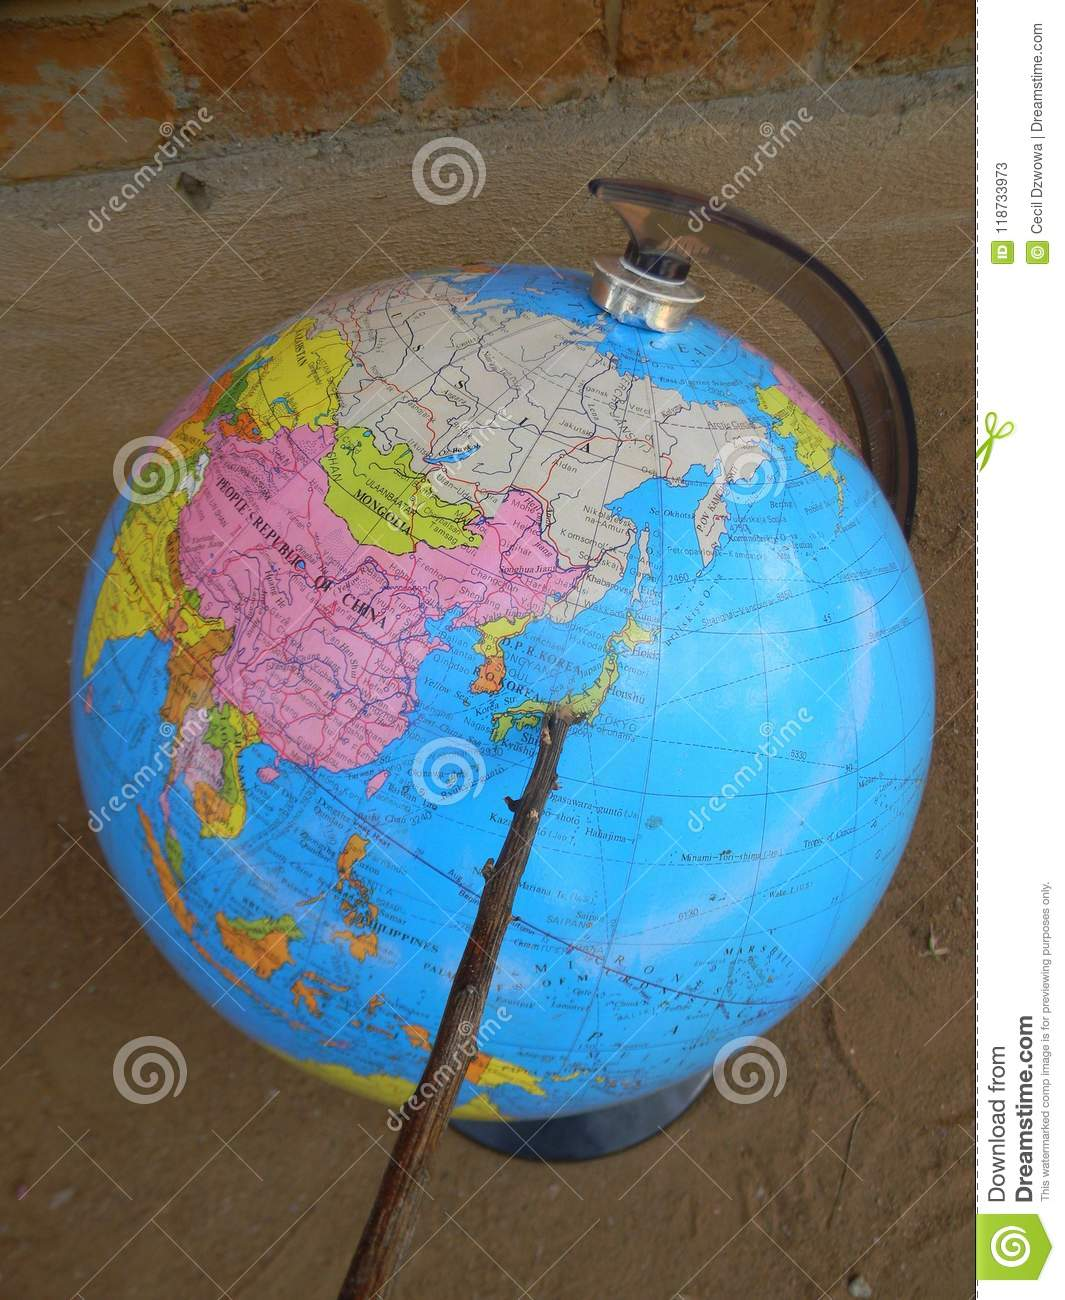 Pointer showing Japan on globe world map.